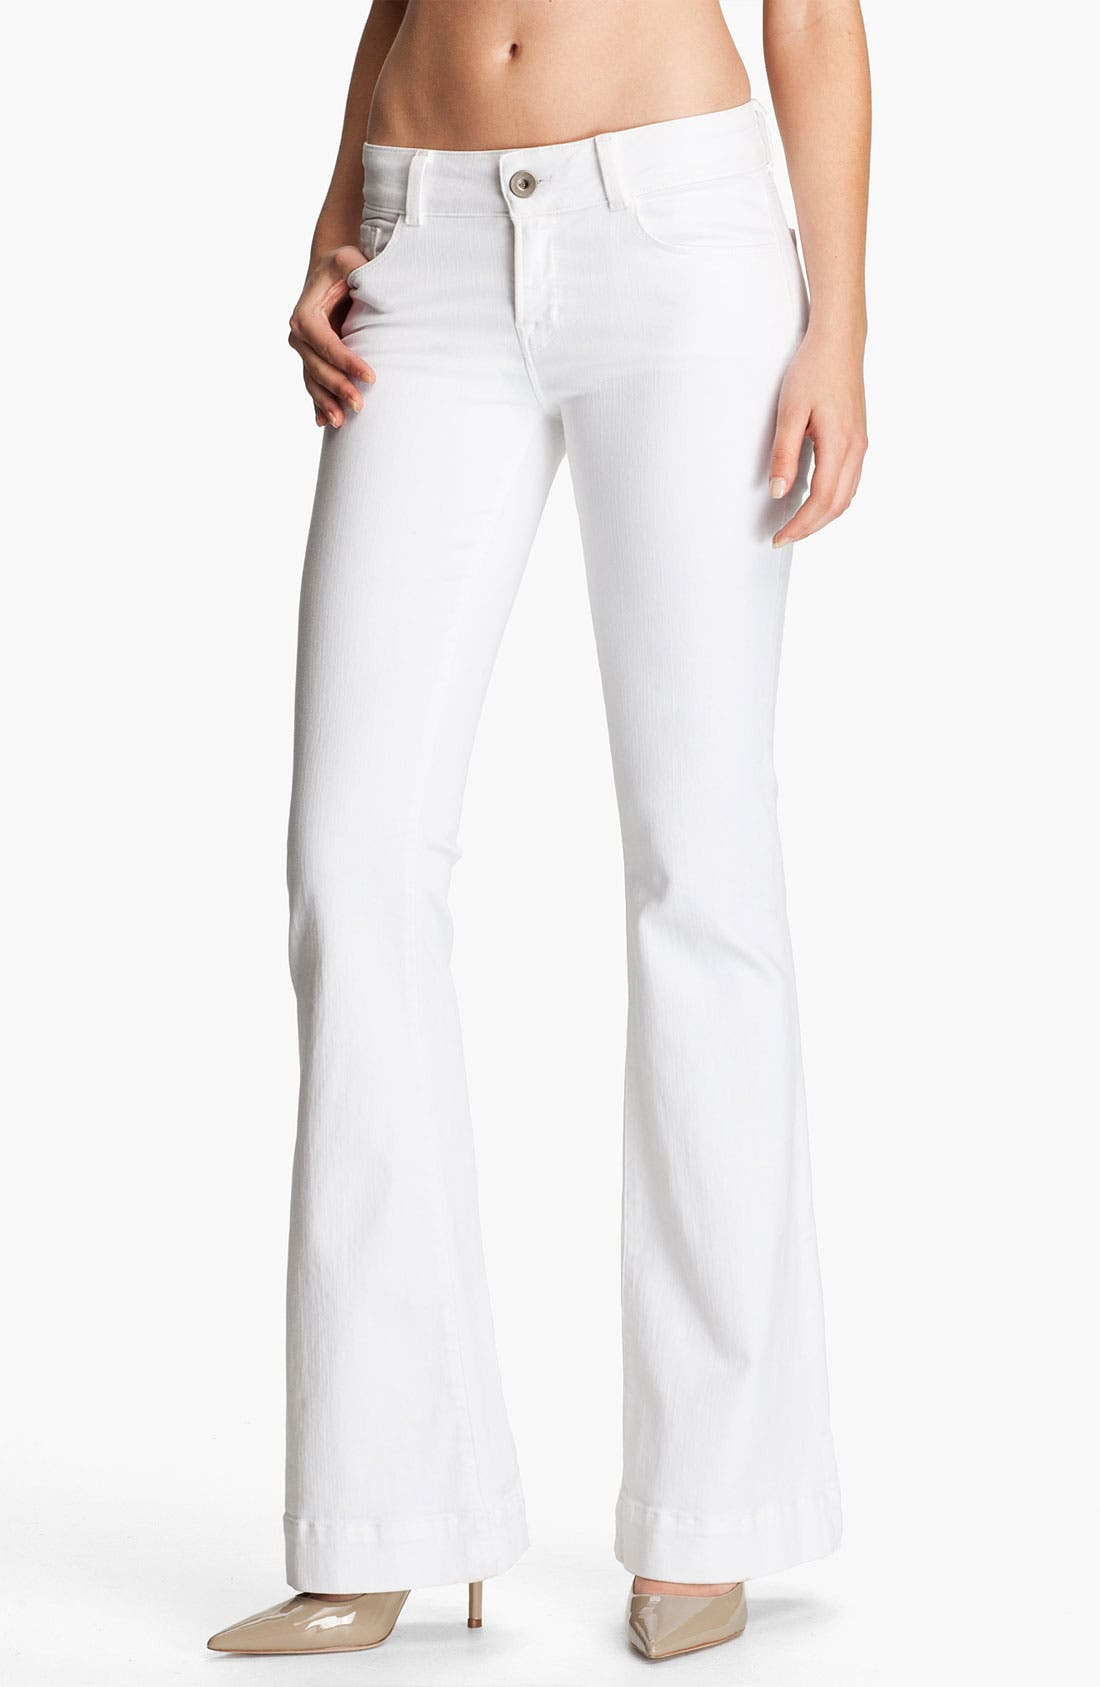 Main Image - J Brand Low Rise Bell Bottom Stretch Jeans (Blanc)